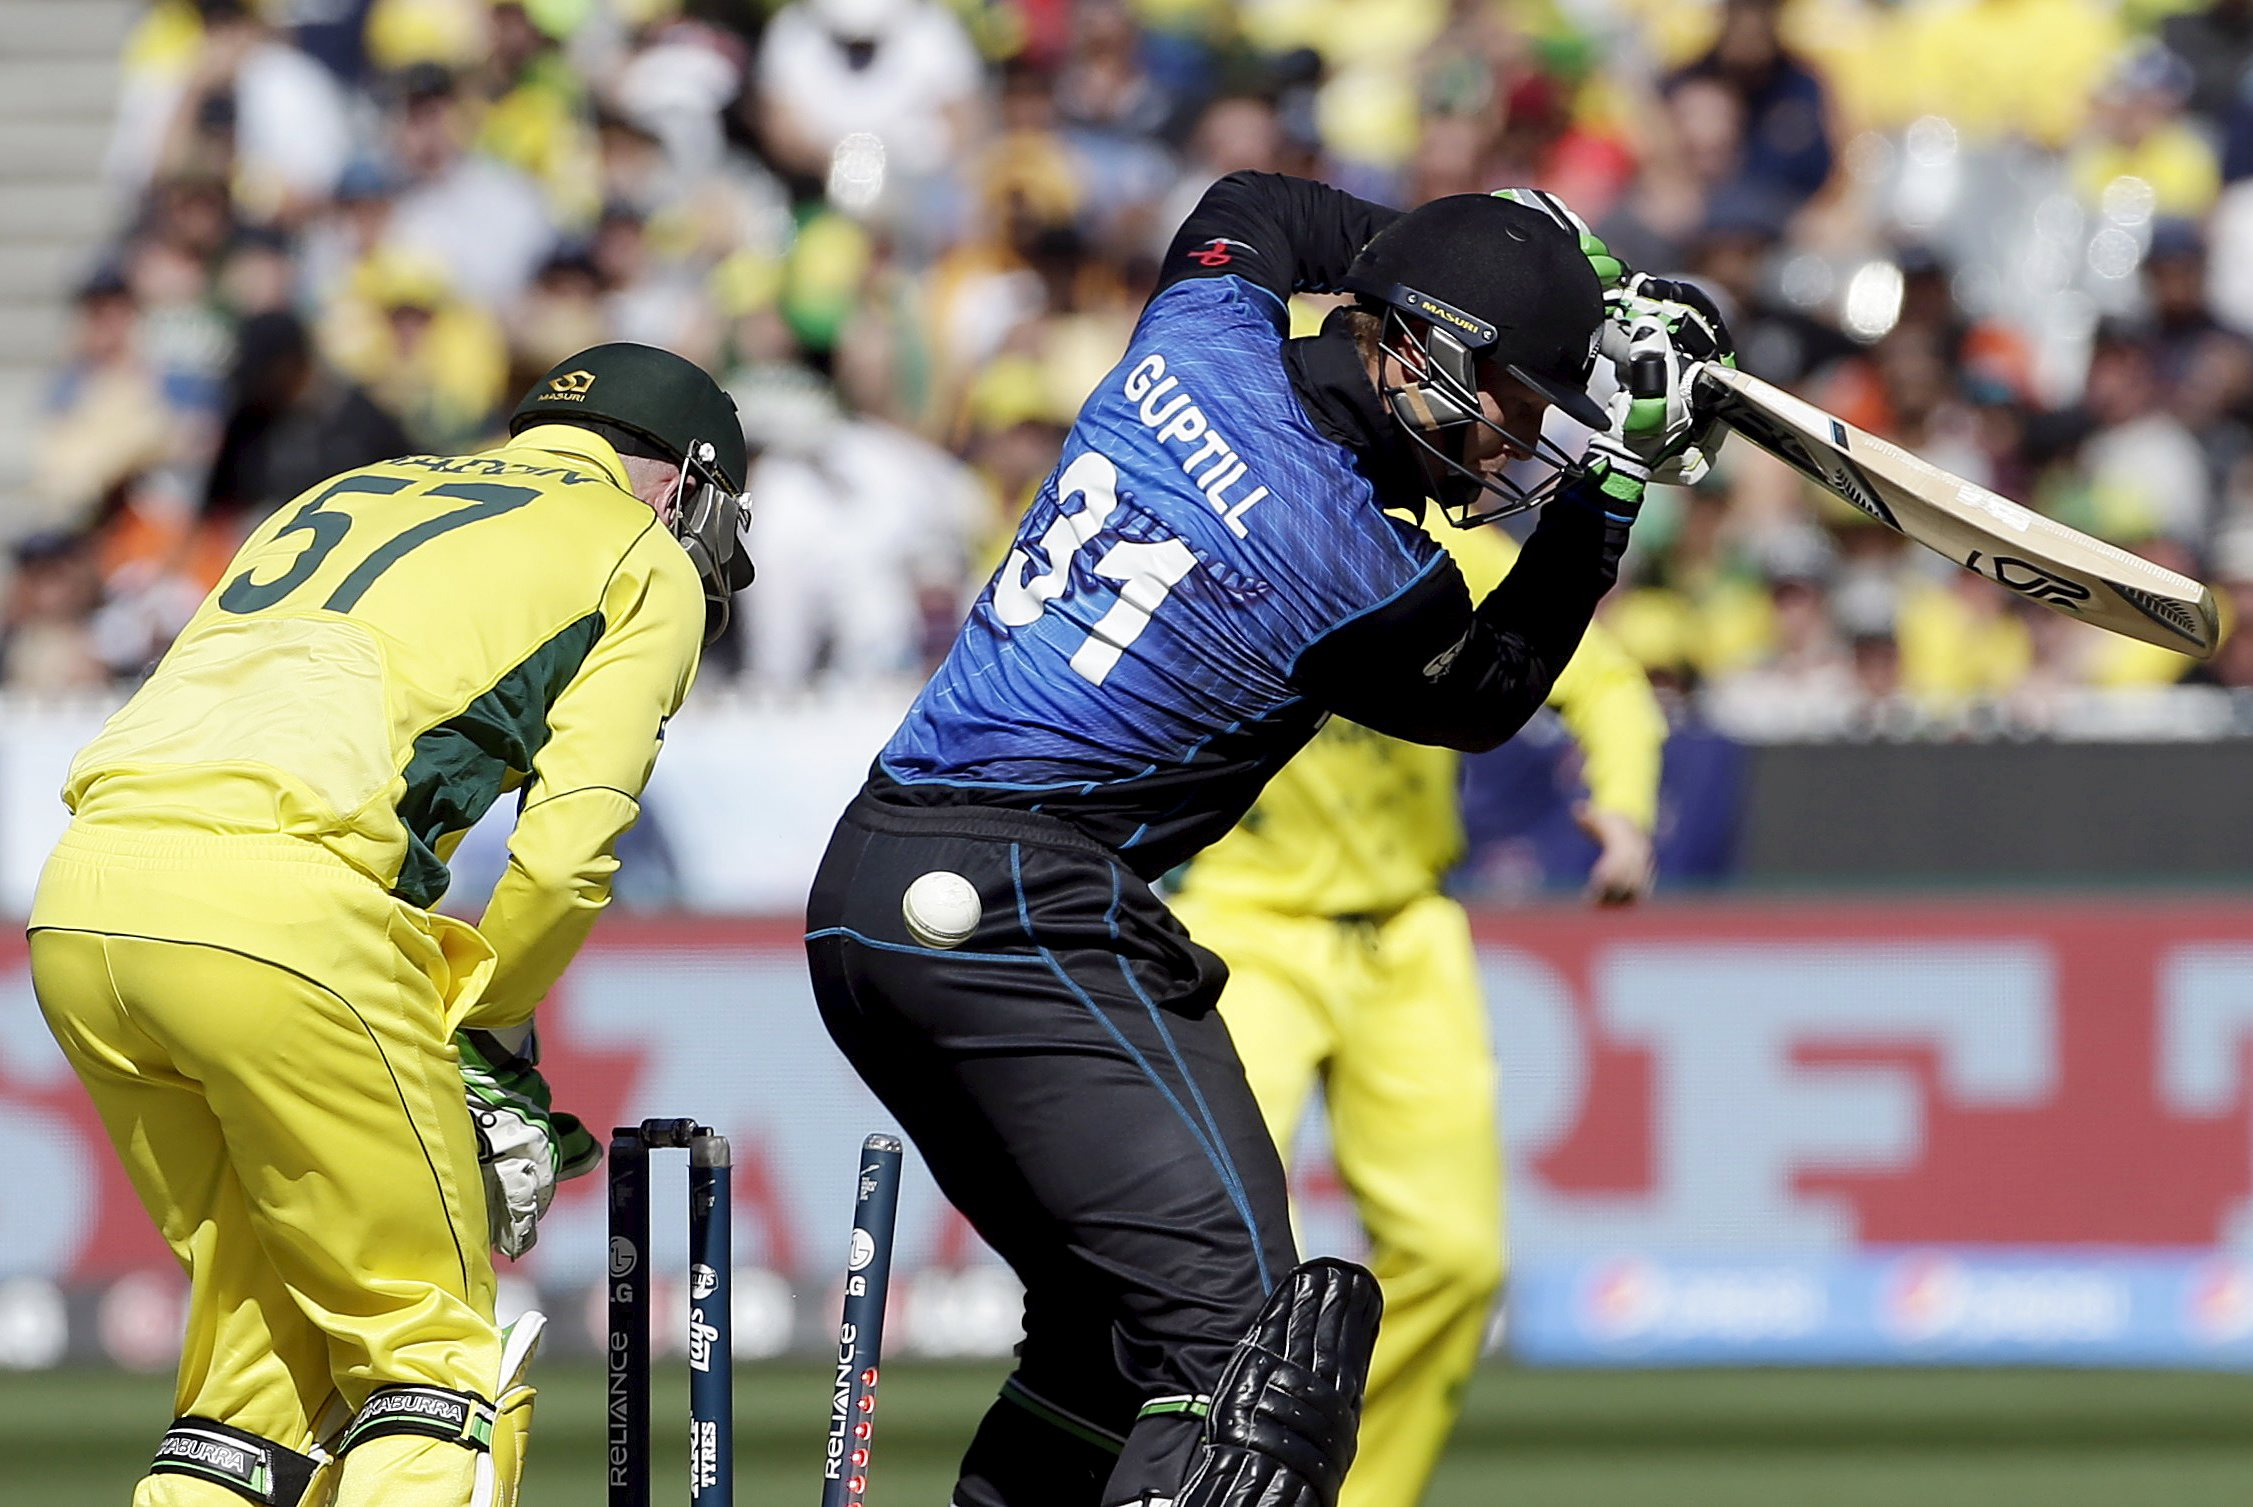 Australia's wicketkeeper Brad Haddin (L) watches as New Zealand's Martin Guptill (R) is bowled by Australia's Glenn Maxwell for 15 runs during their Cricket World Cup final match at the Melbourne Cricket Ground (MCG) March 29, 2015. REUTERS/Hamish Blair